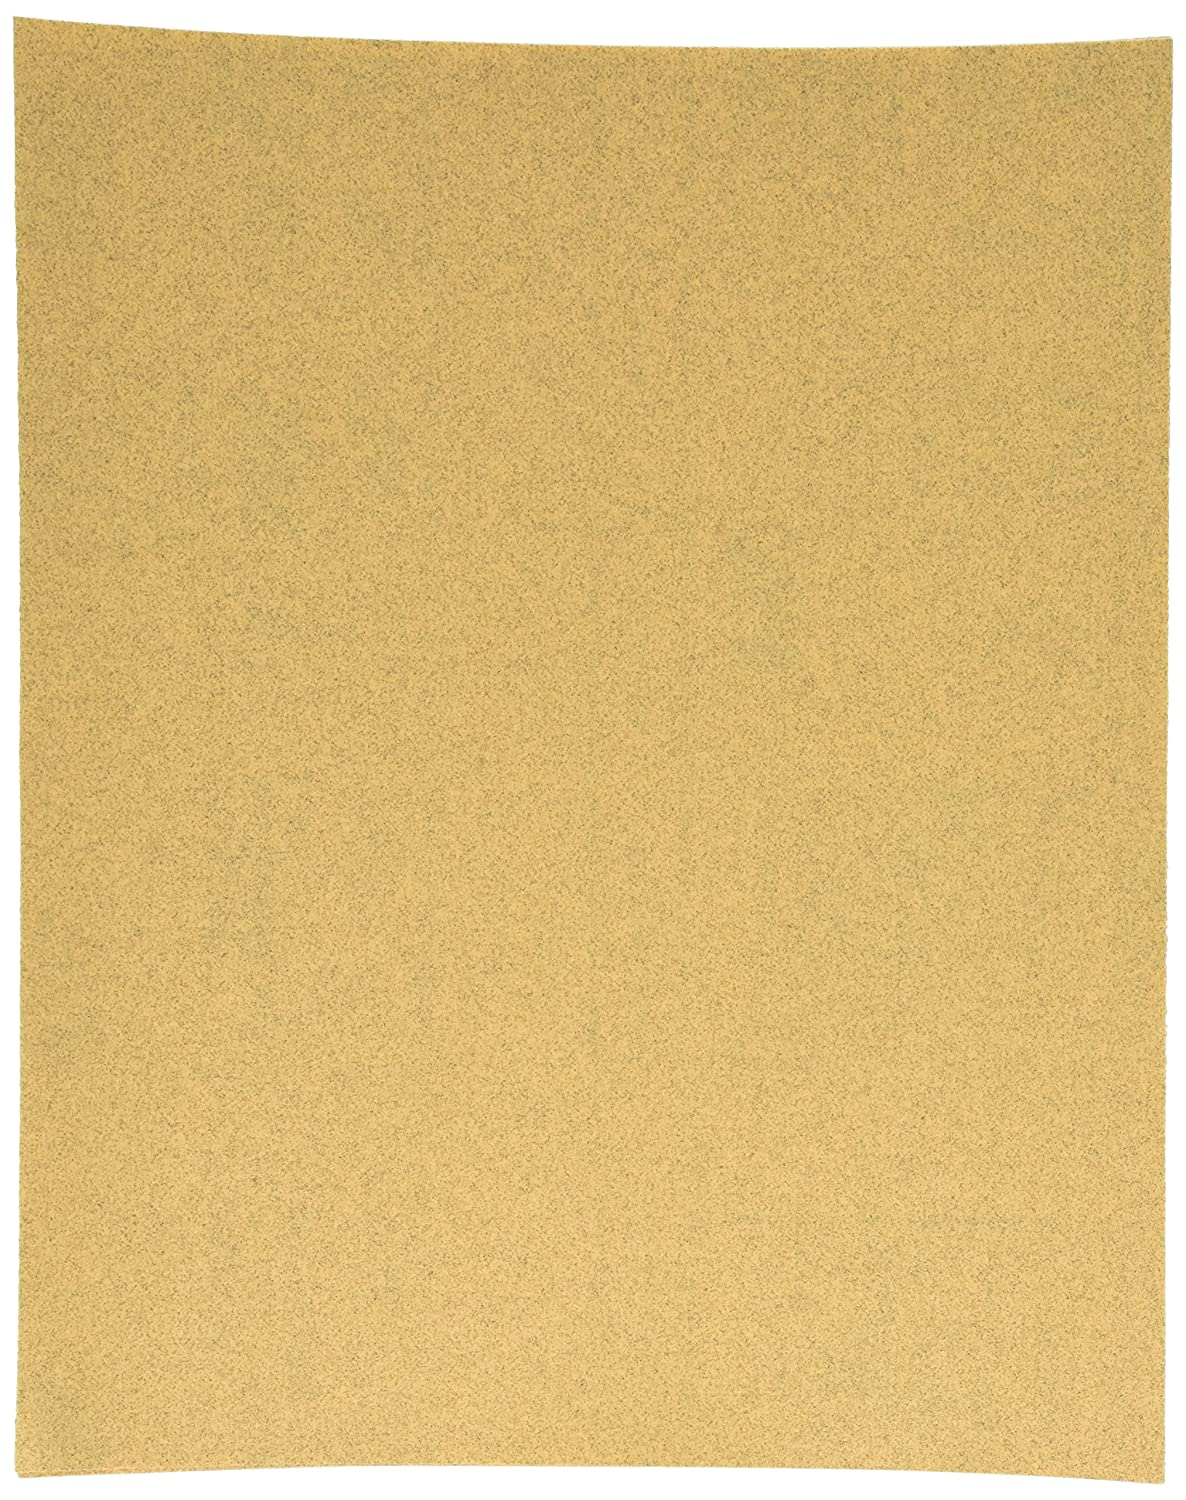 3M Pro-Pak 99402NA Aluminum Oxide Sheets for Paint and Rust Removal, 9-Inch  by 11-Inch, 150C